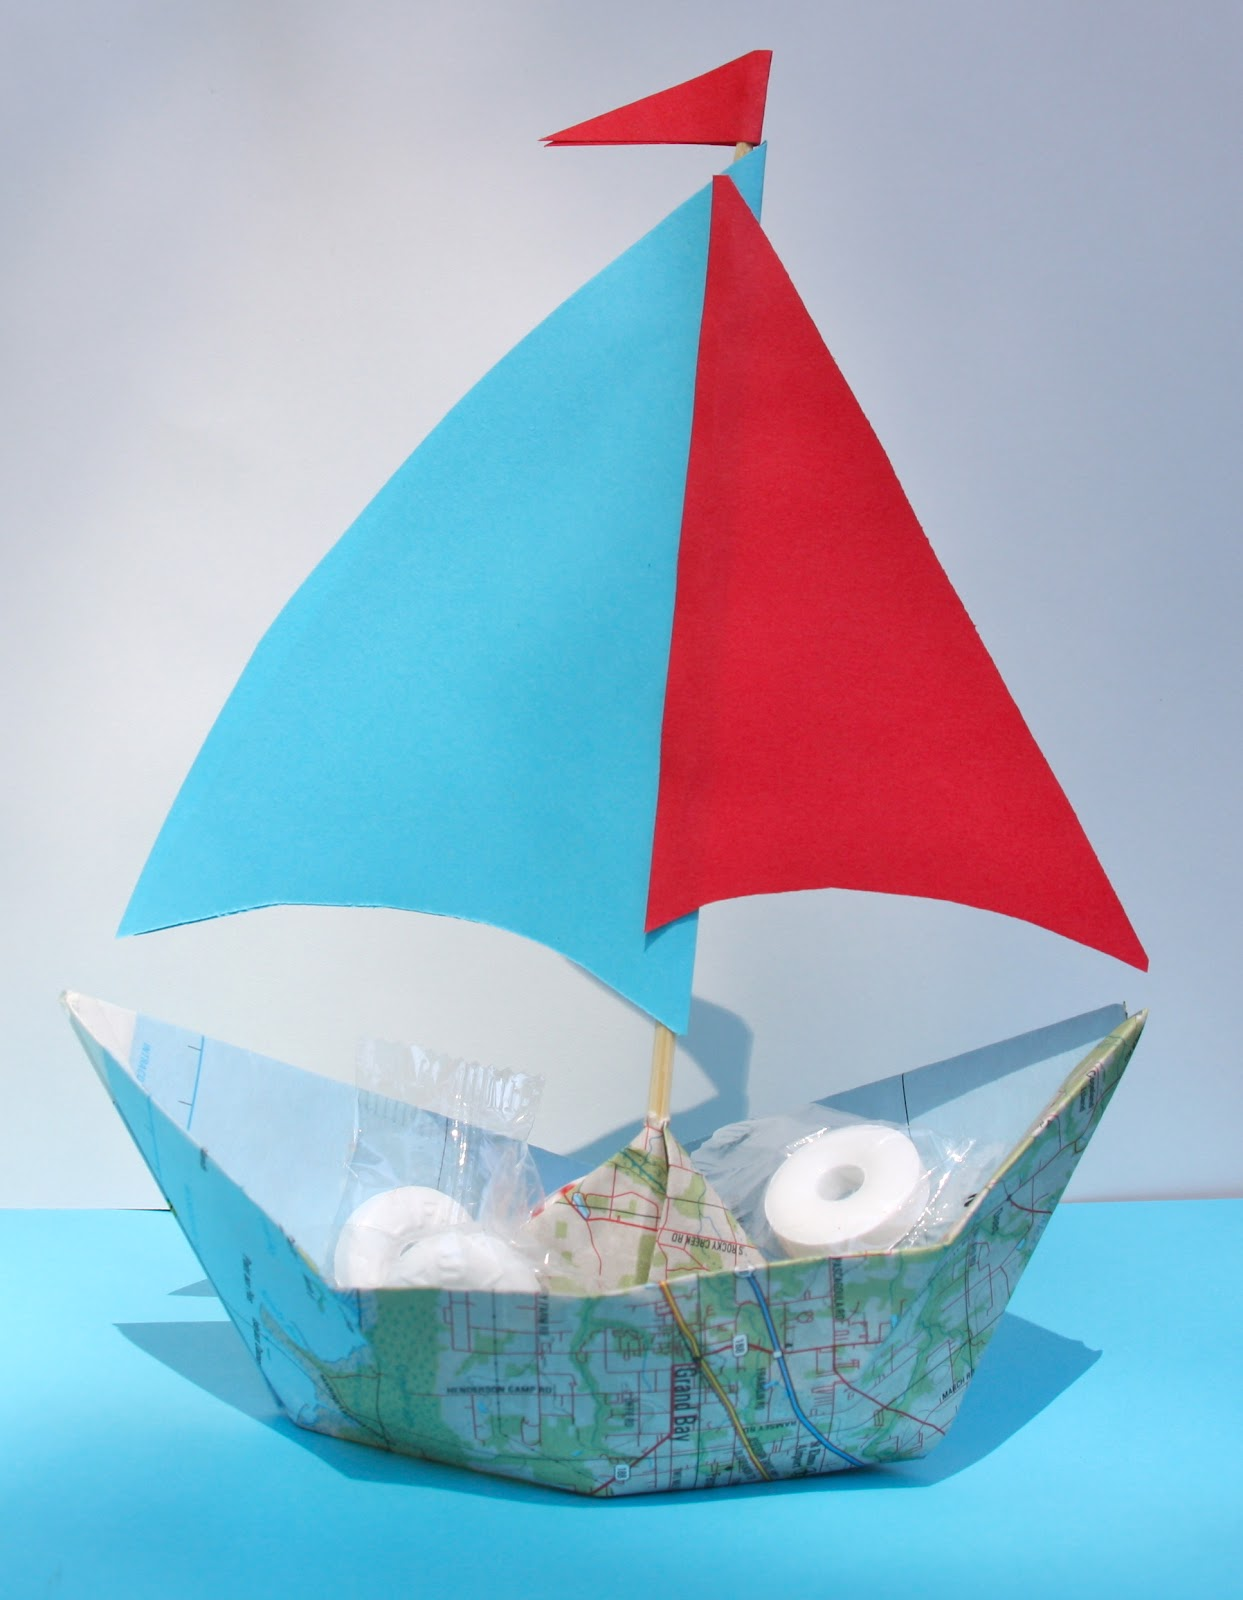 Of Such is the Kingdom: How to Make a Sailboat